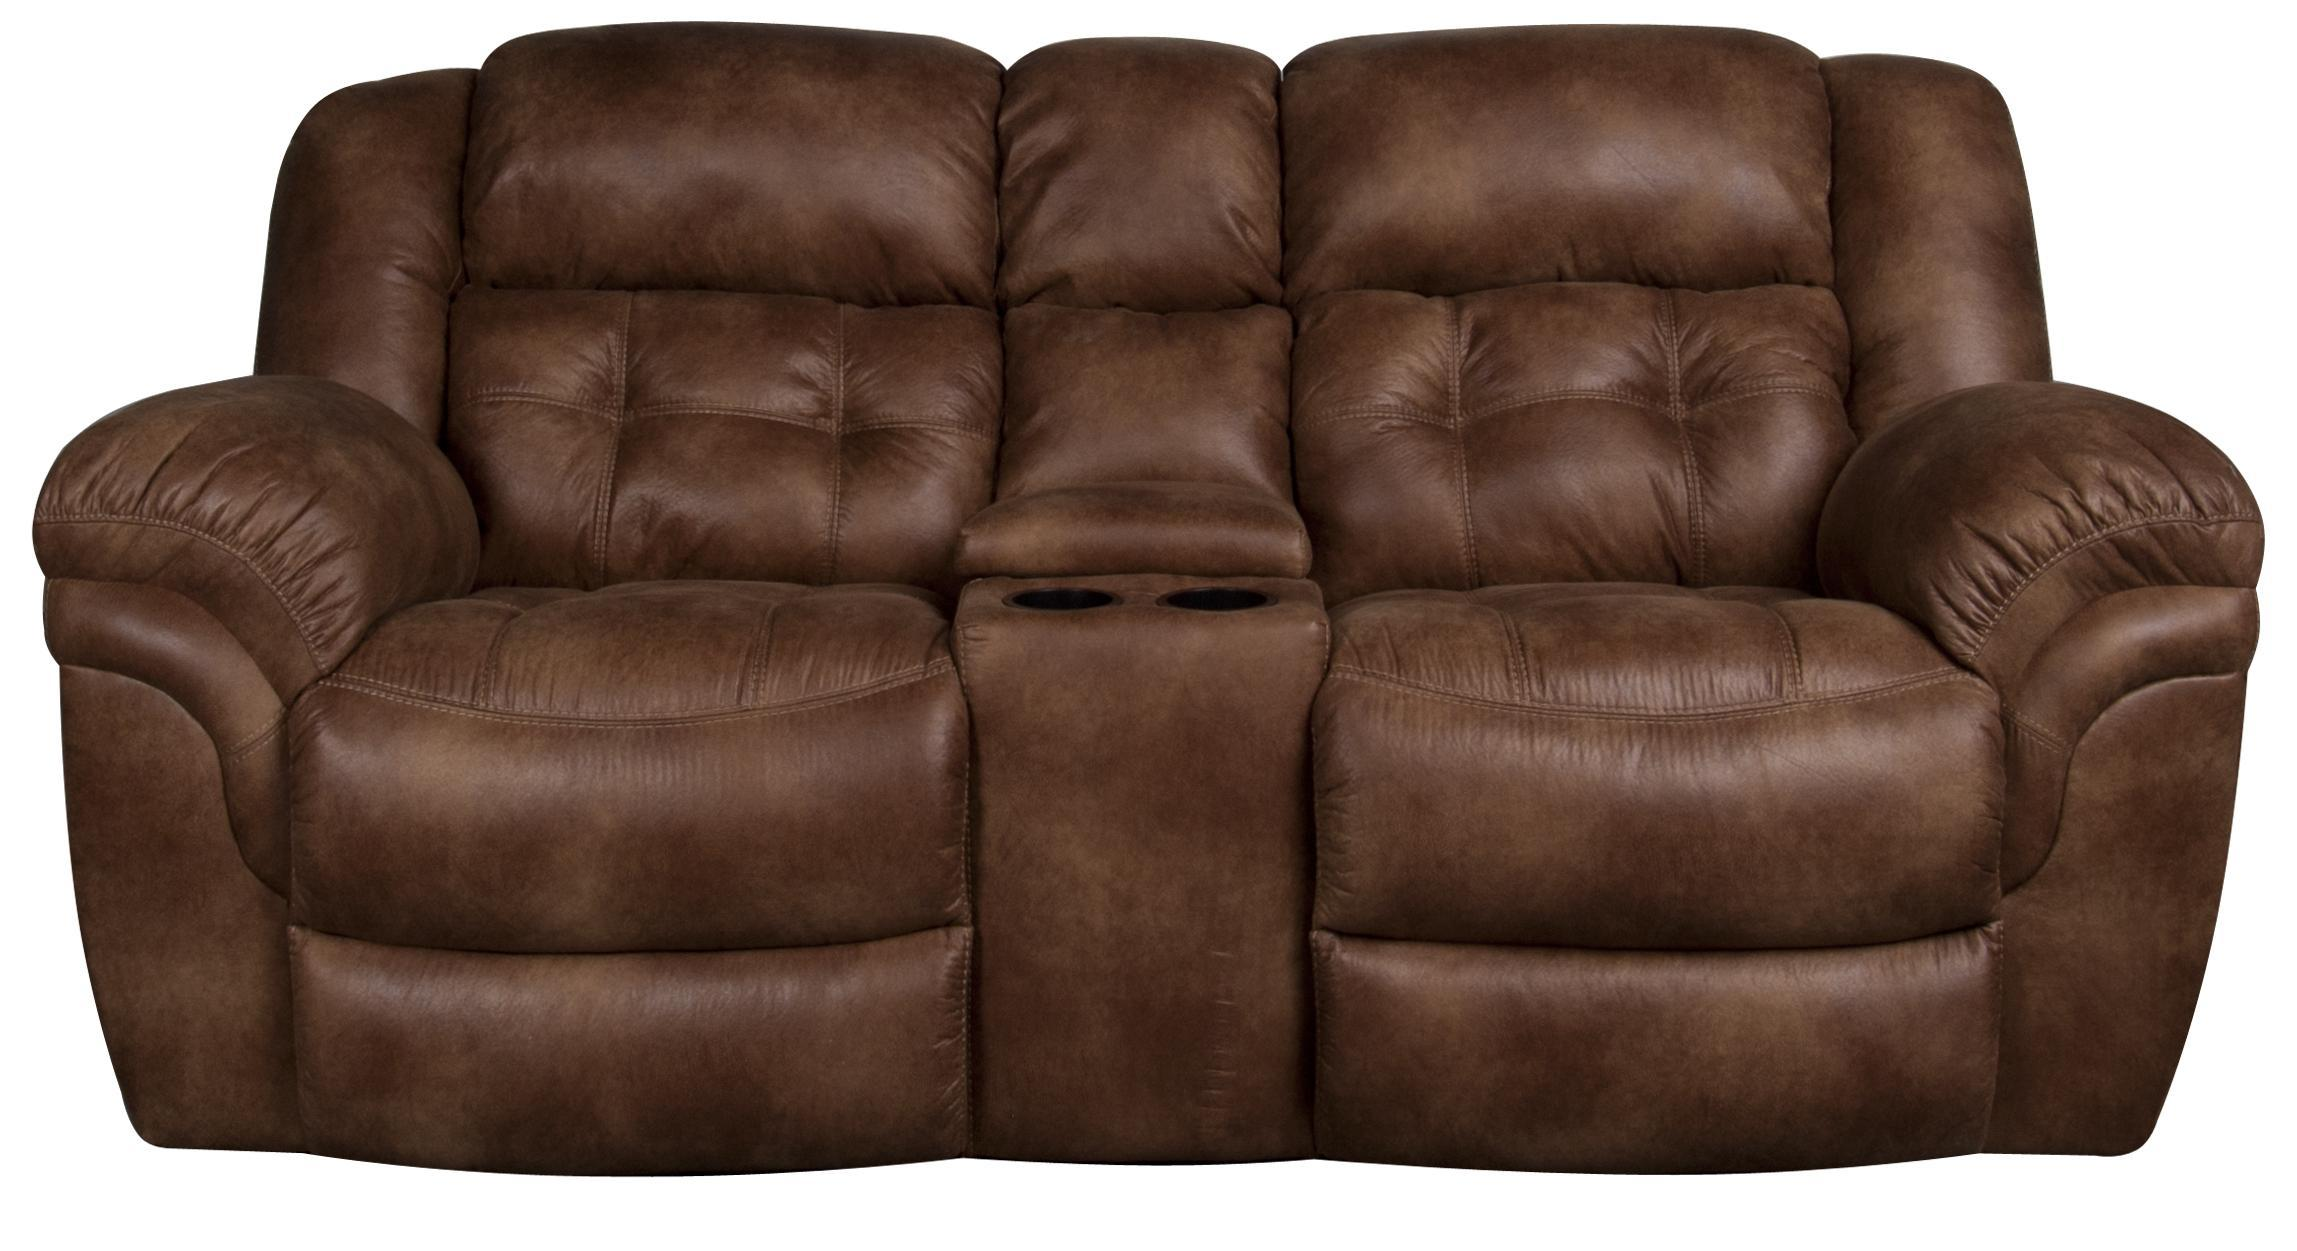 Morris Home Furnishings Elijah Elijah Reclining Loveseat with Console - Item Number: 105855071